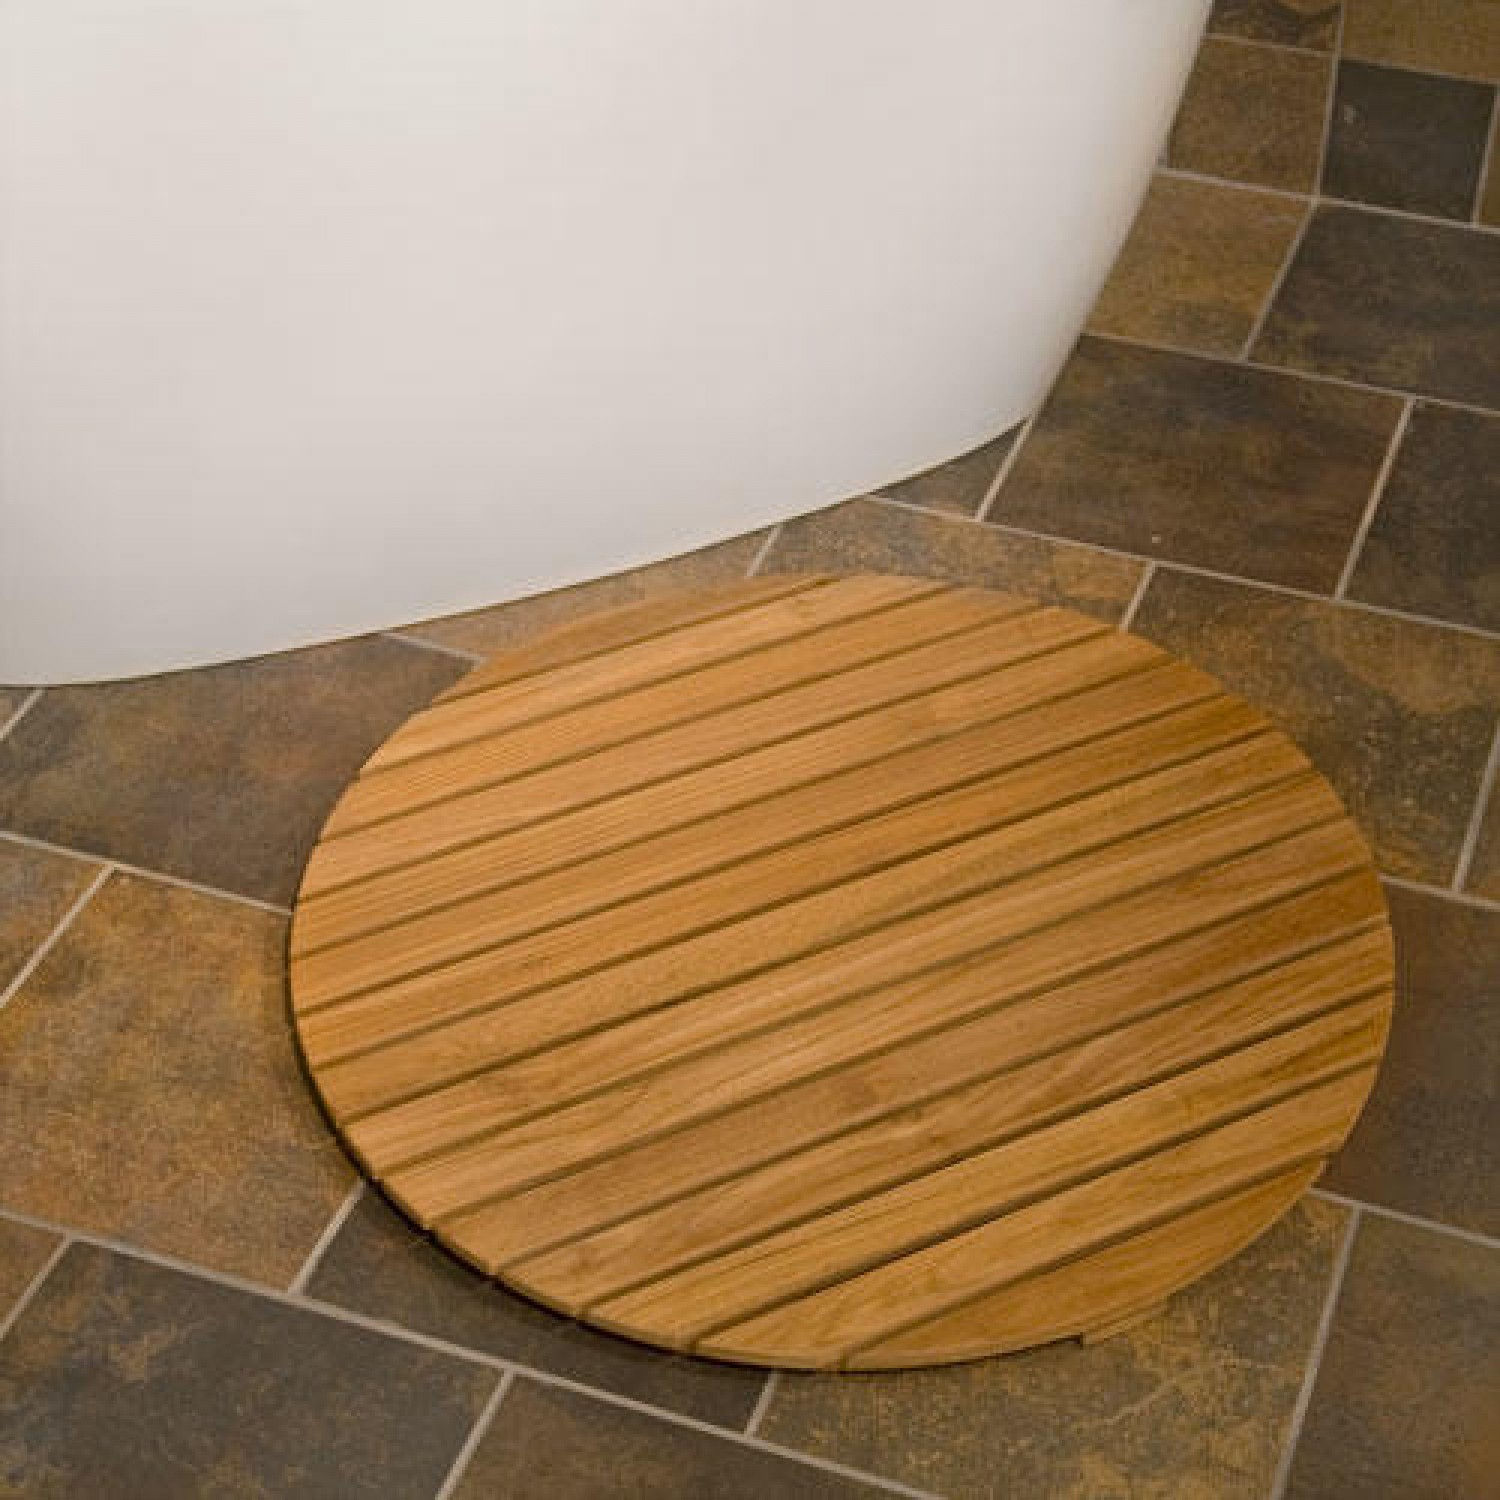 Wood Shower Mat: Give A Little Natural Accent to Your Bathroom ...